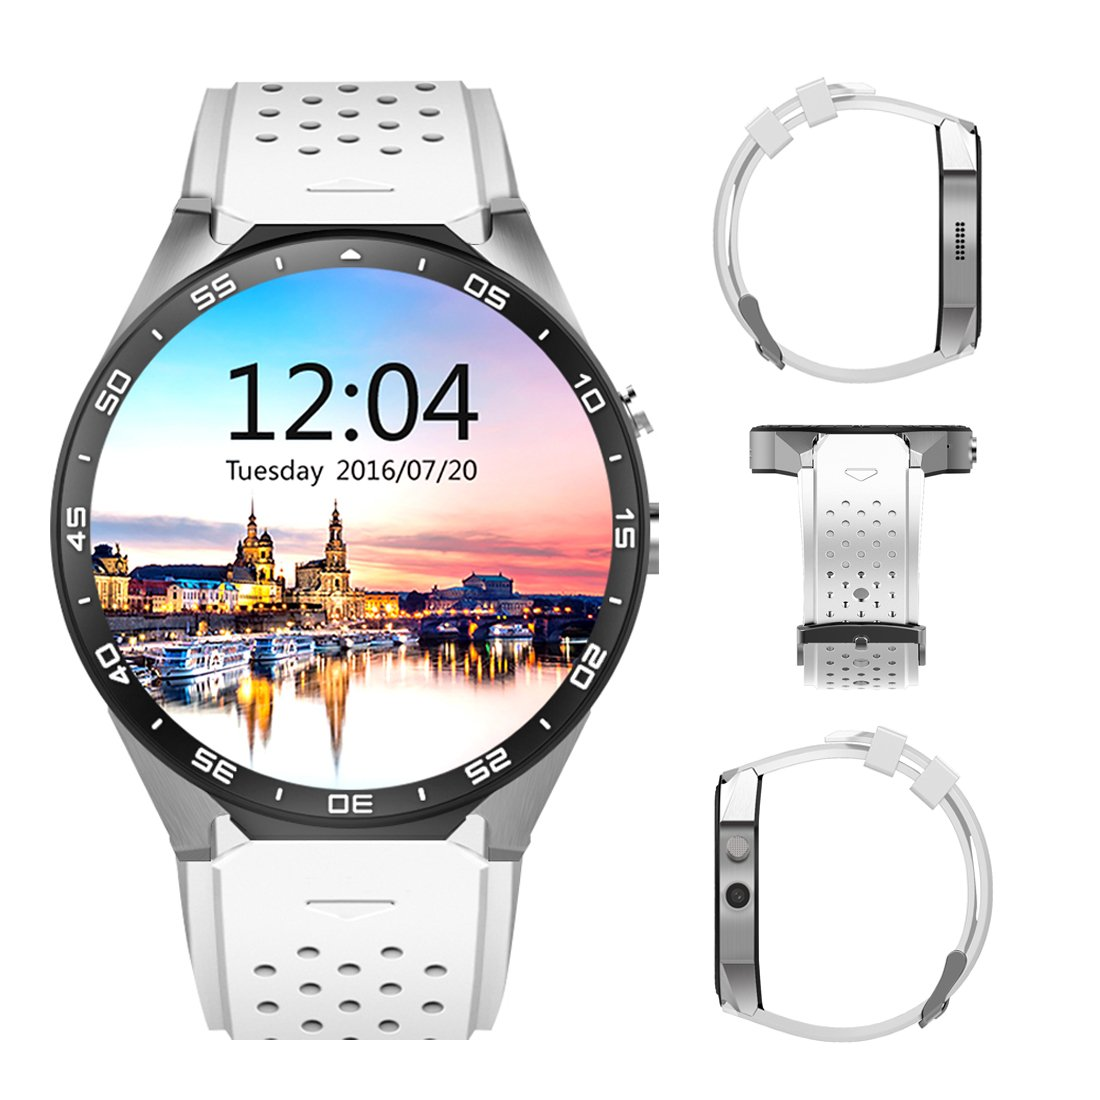 3G Smart Watch, Android 5.1 OS, Quad Core support 2.0MP Camera Bluetooth SIM Card WiFi GPS Heart Rate Monitor (White+Silver)